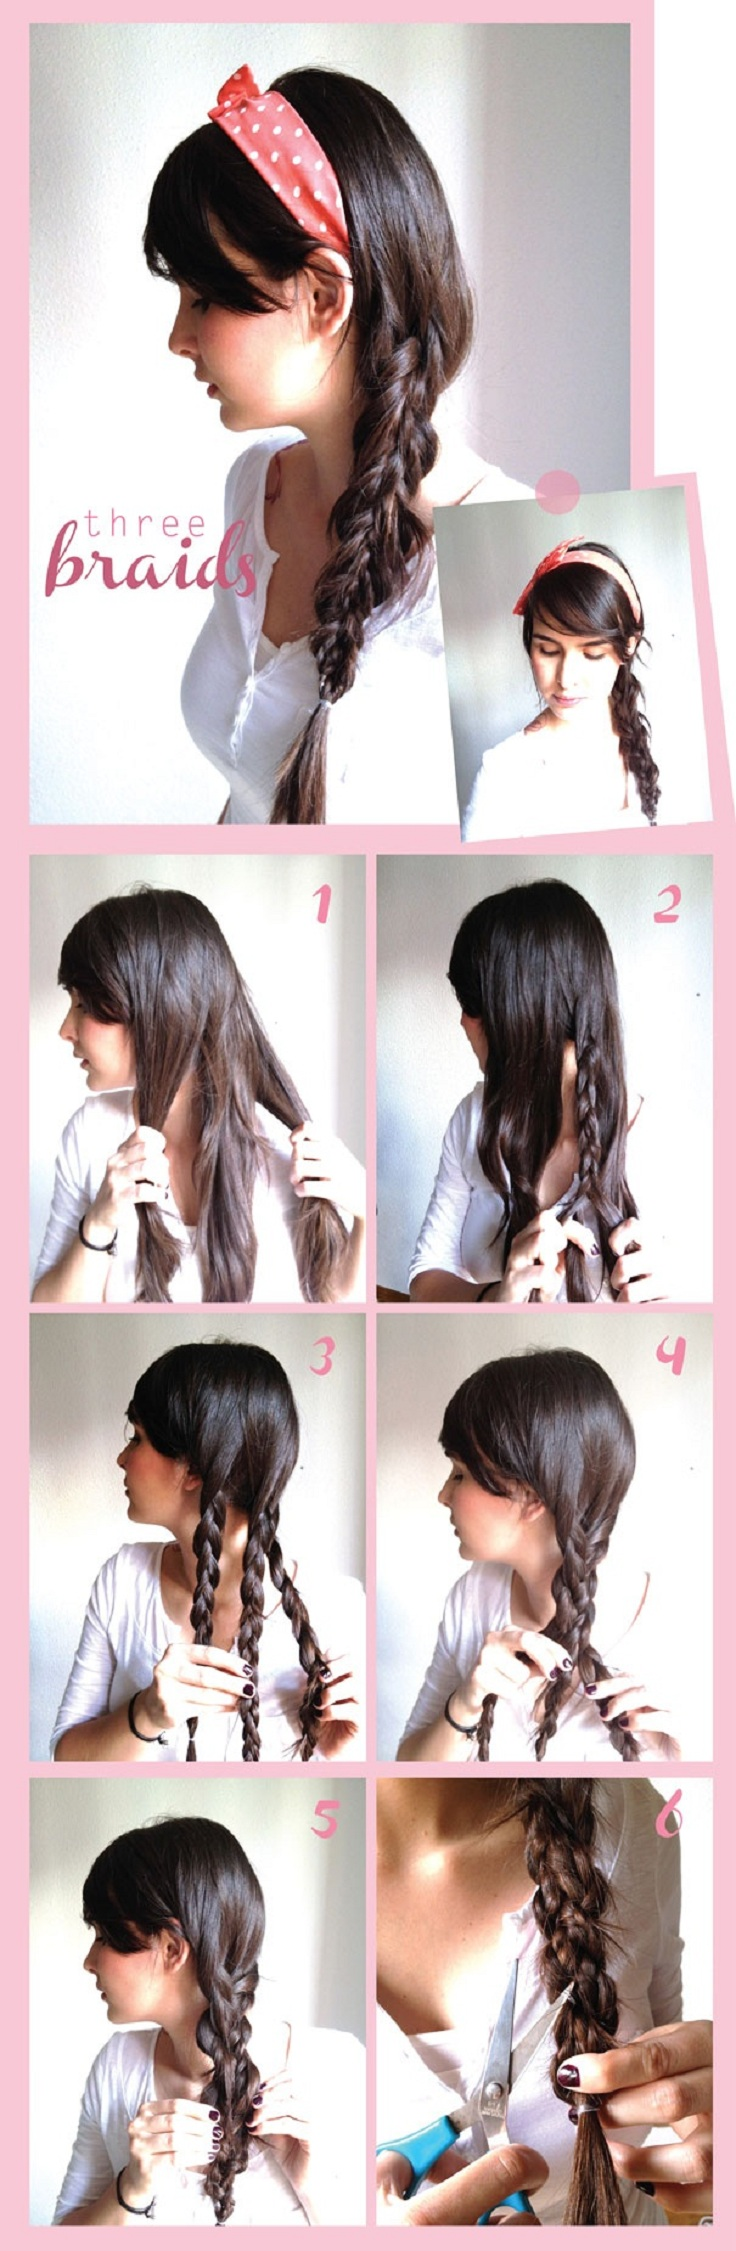 Hair Braid Tutorials - Easy to be done [Top 10]